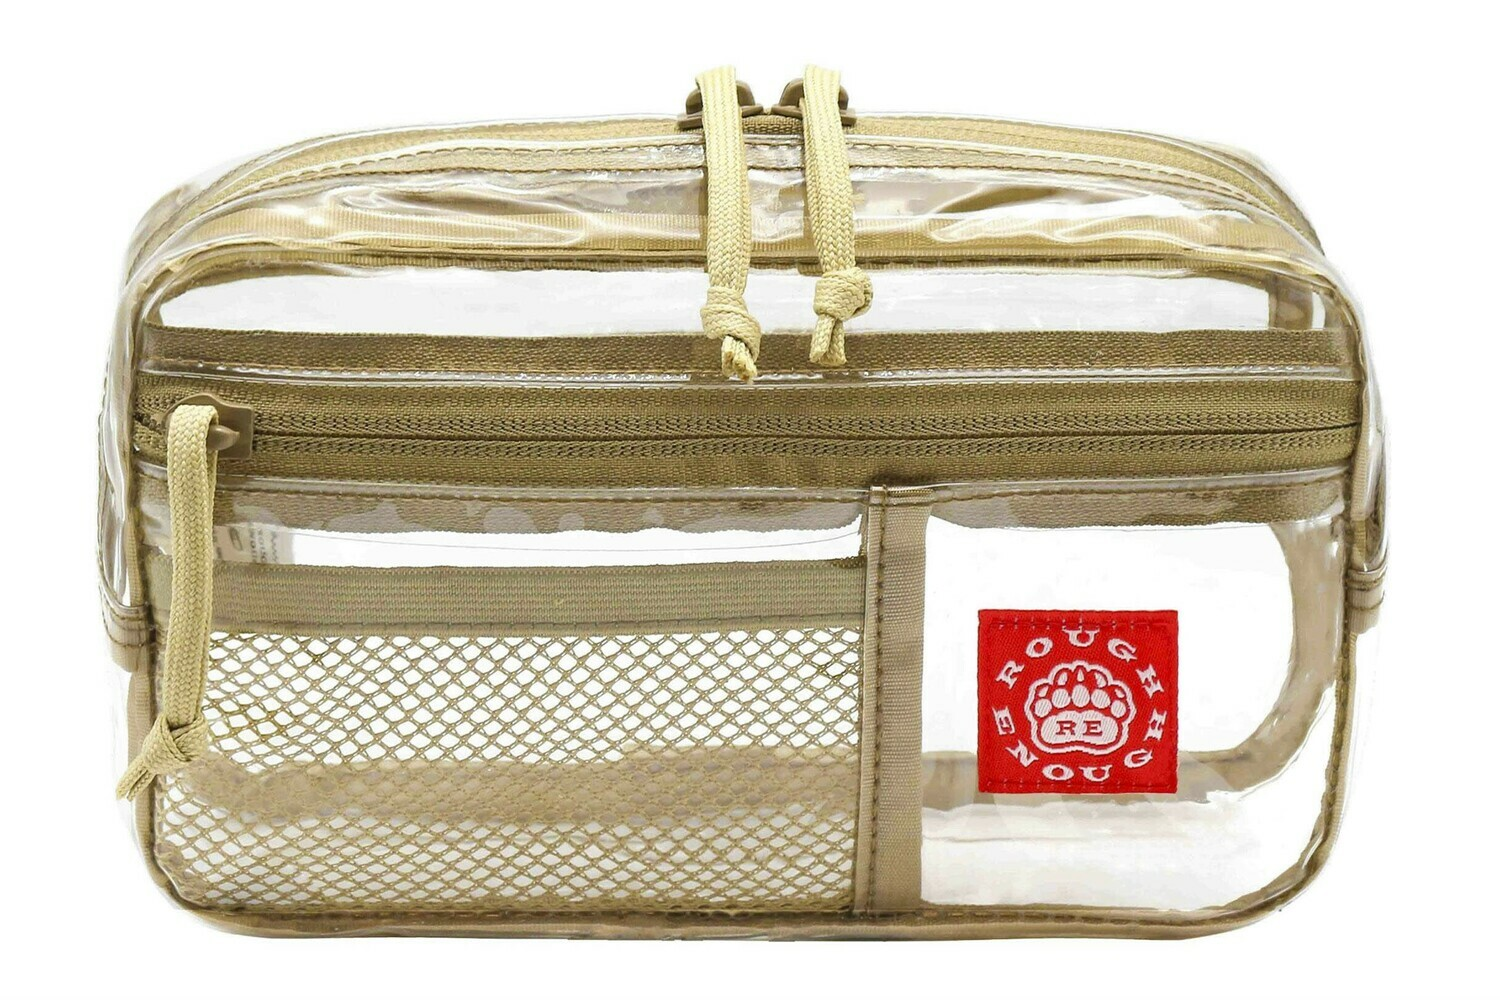 RE8424 Travel Clear TSA Approved Toiletry Bag